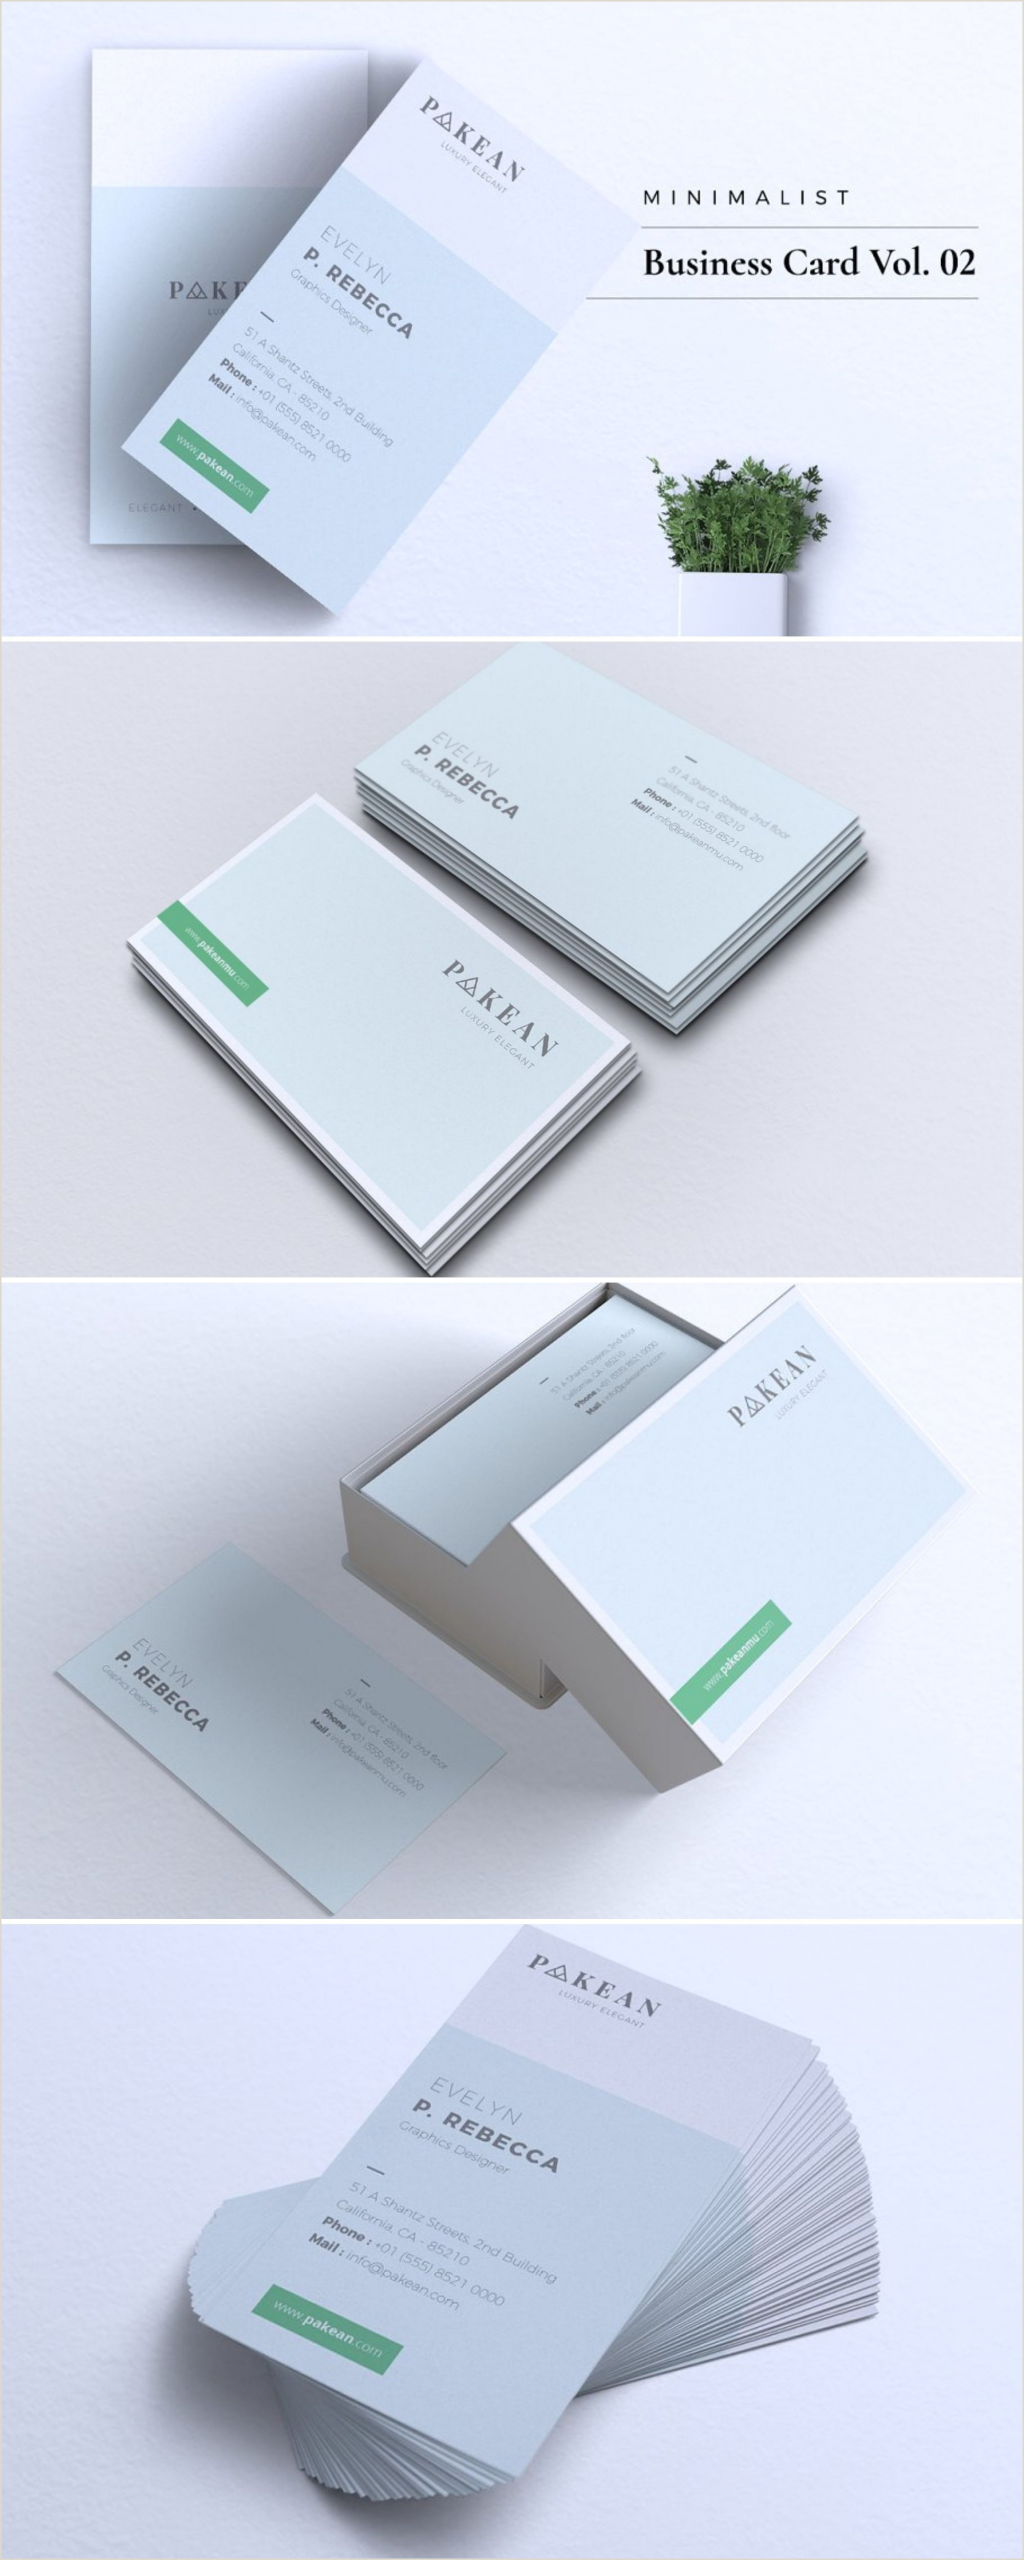 Info On A Business Card Minimalist Business Card Vol 02